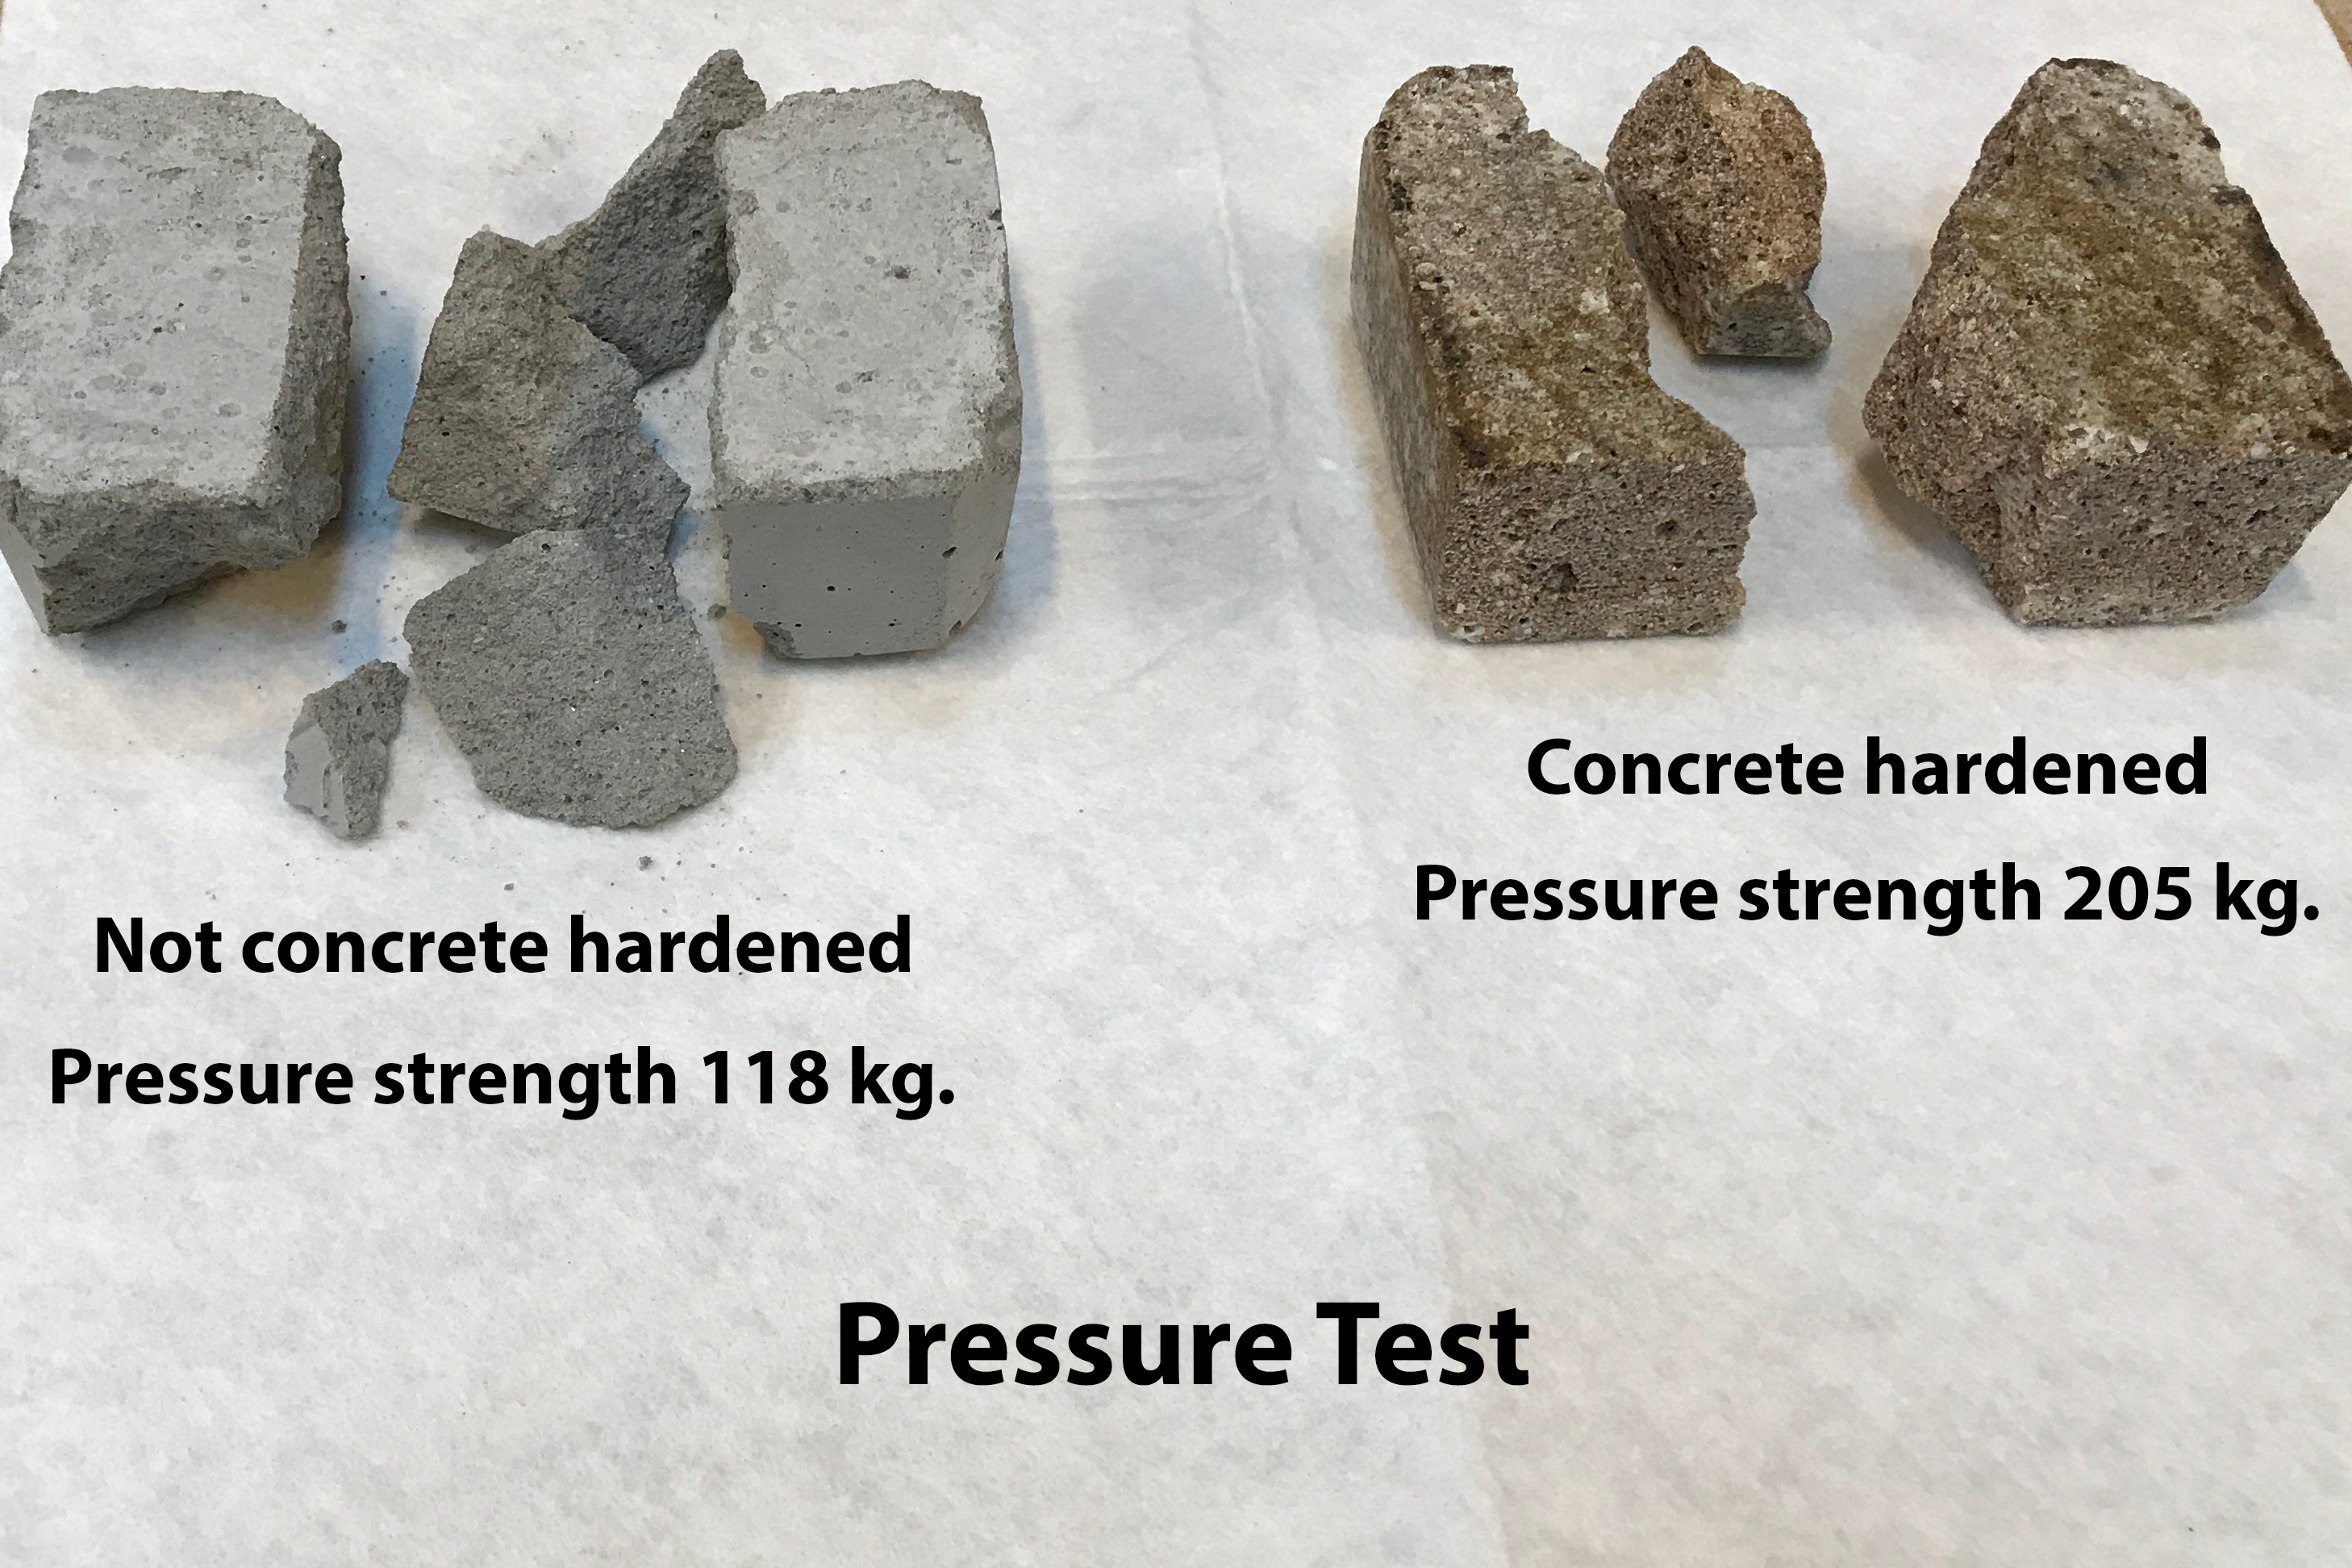 Concrete Hardened Fire Pressure Test